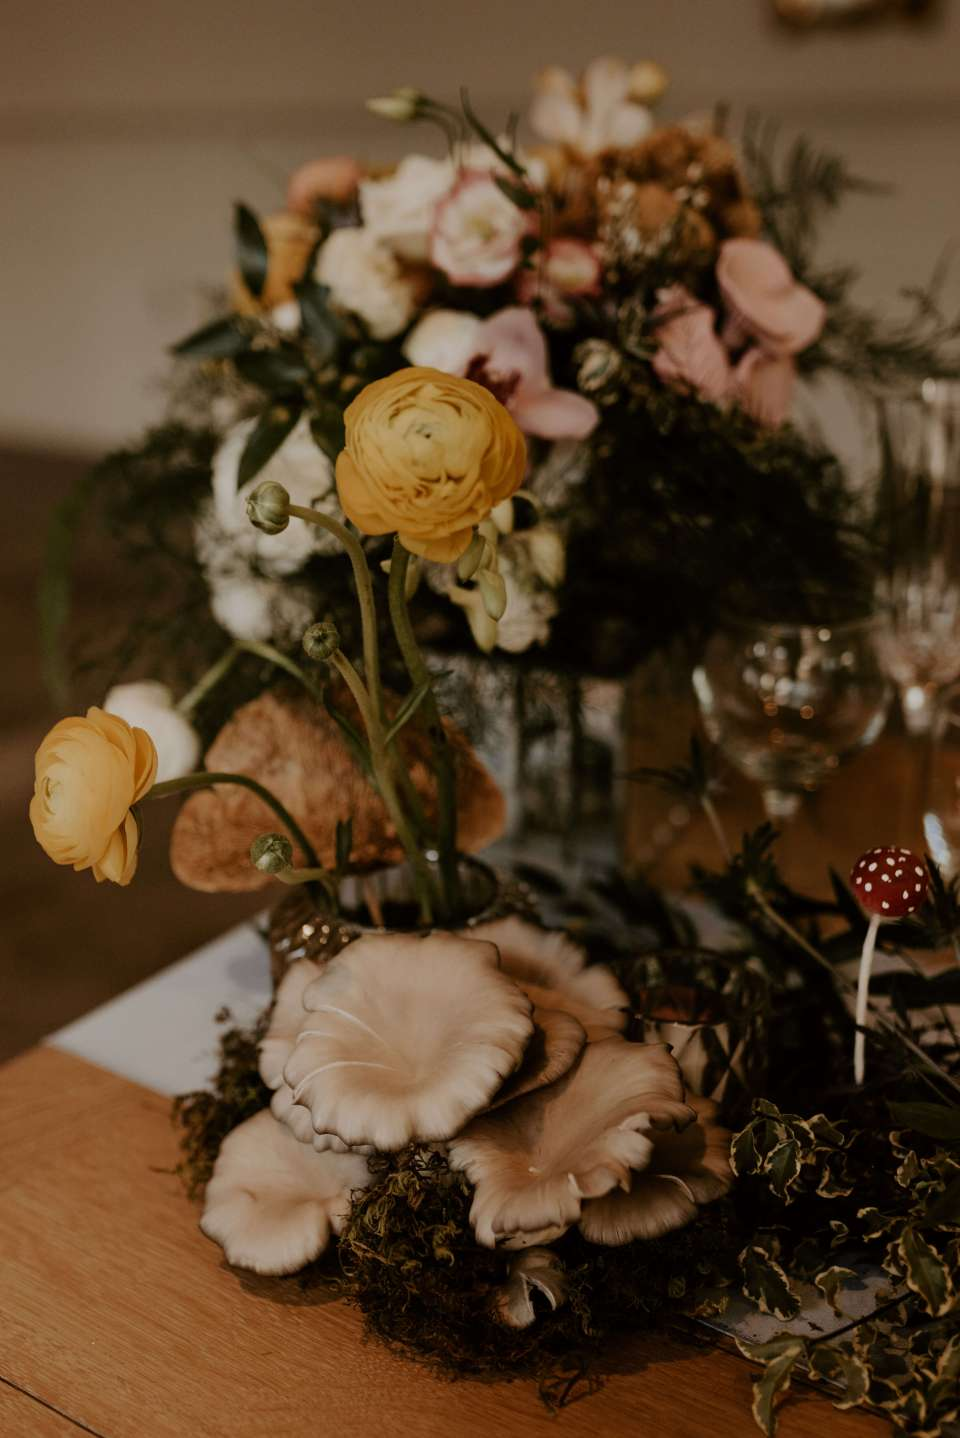 A close up still life portrait of beautiful wedding florals created by Amethyst Event Productions